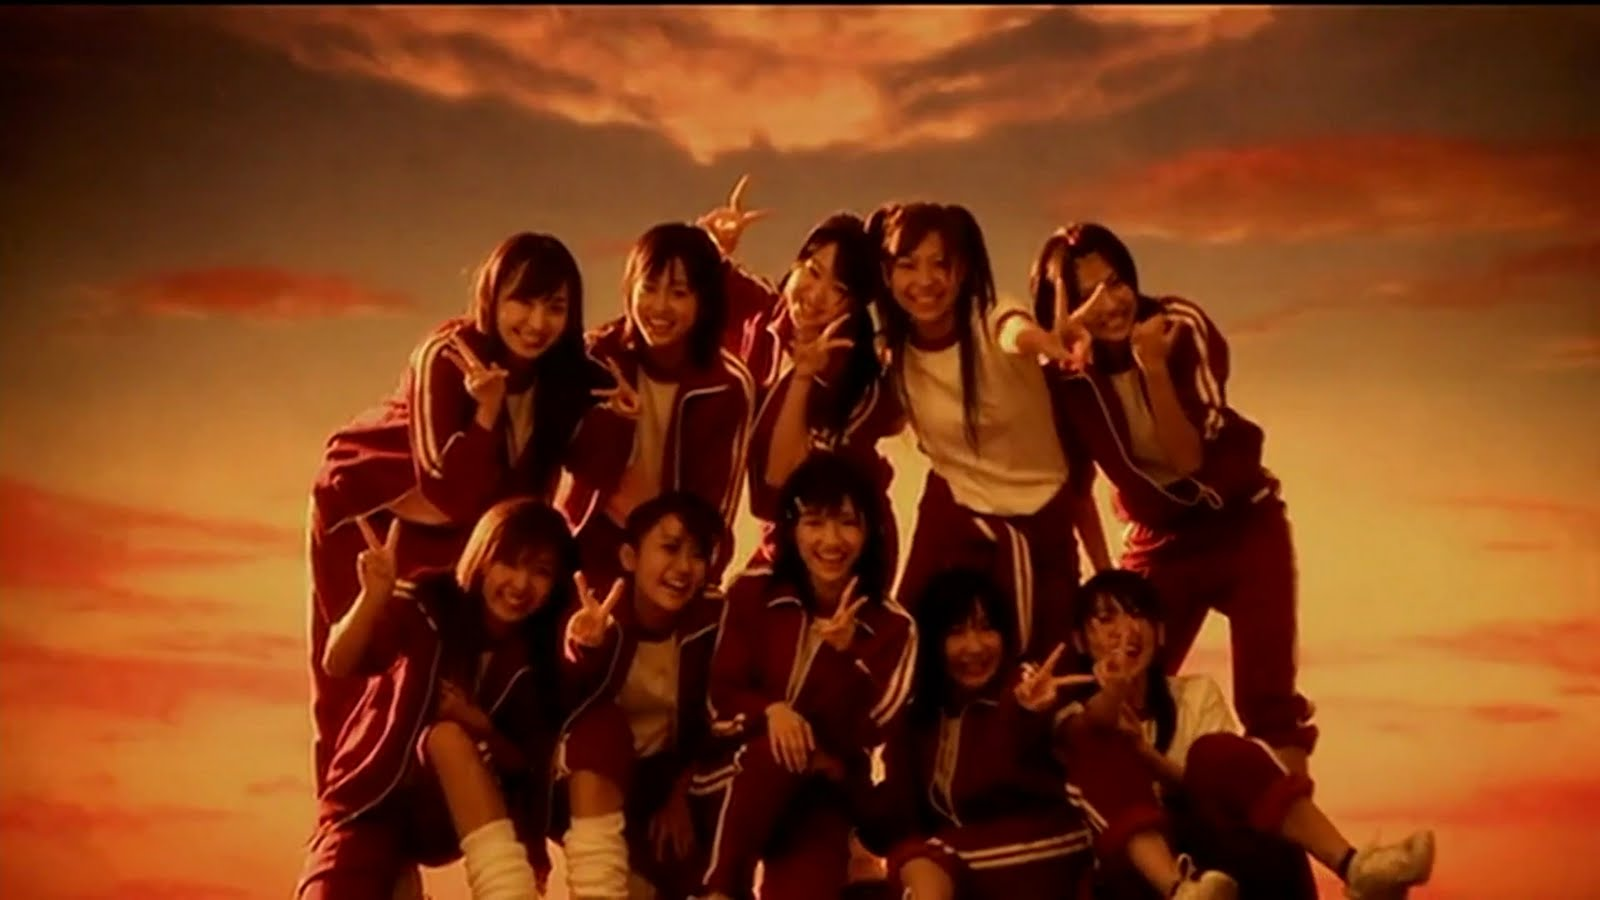 Download Akb48 Yuuhi Wo Miteiru Ka Rar free - helperfam